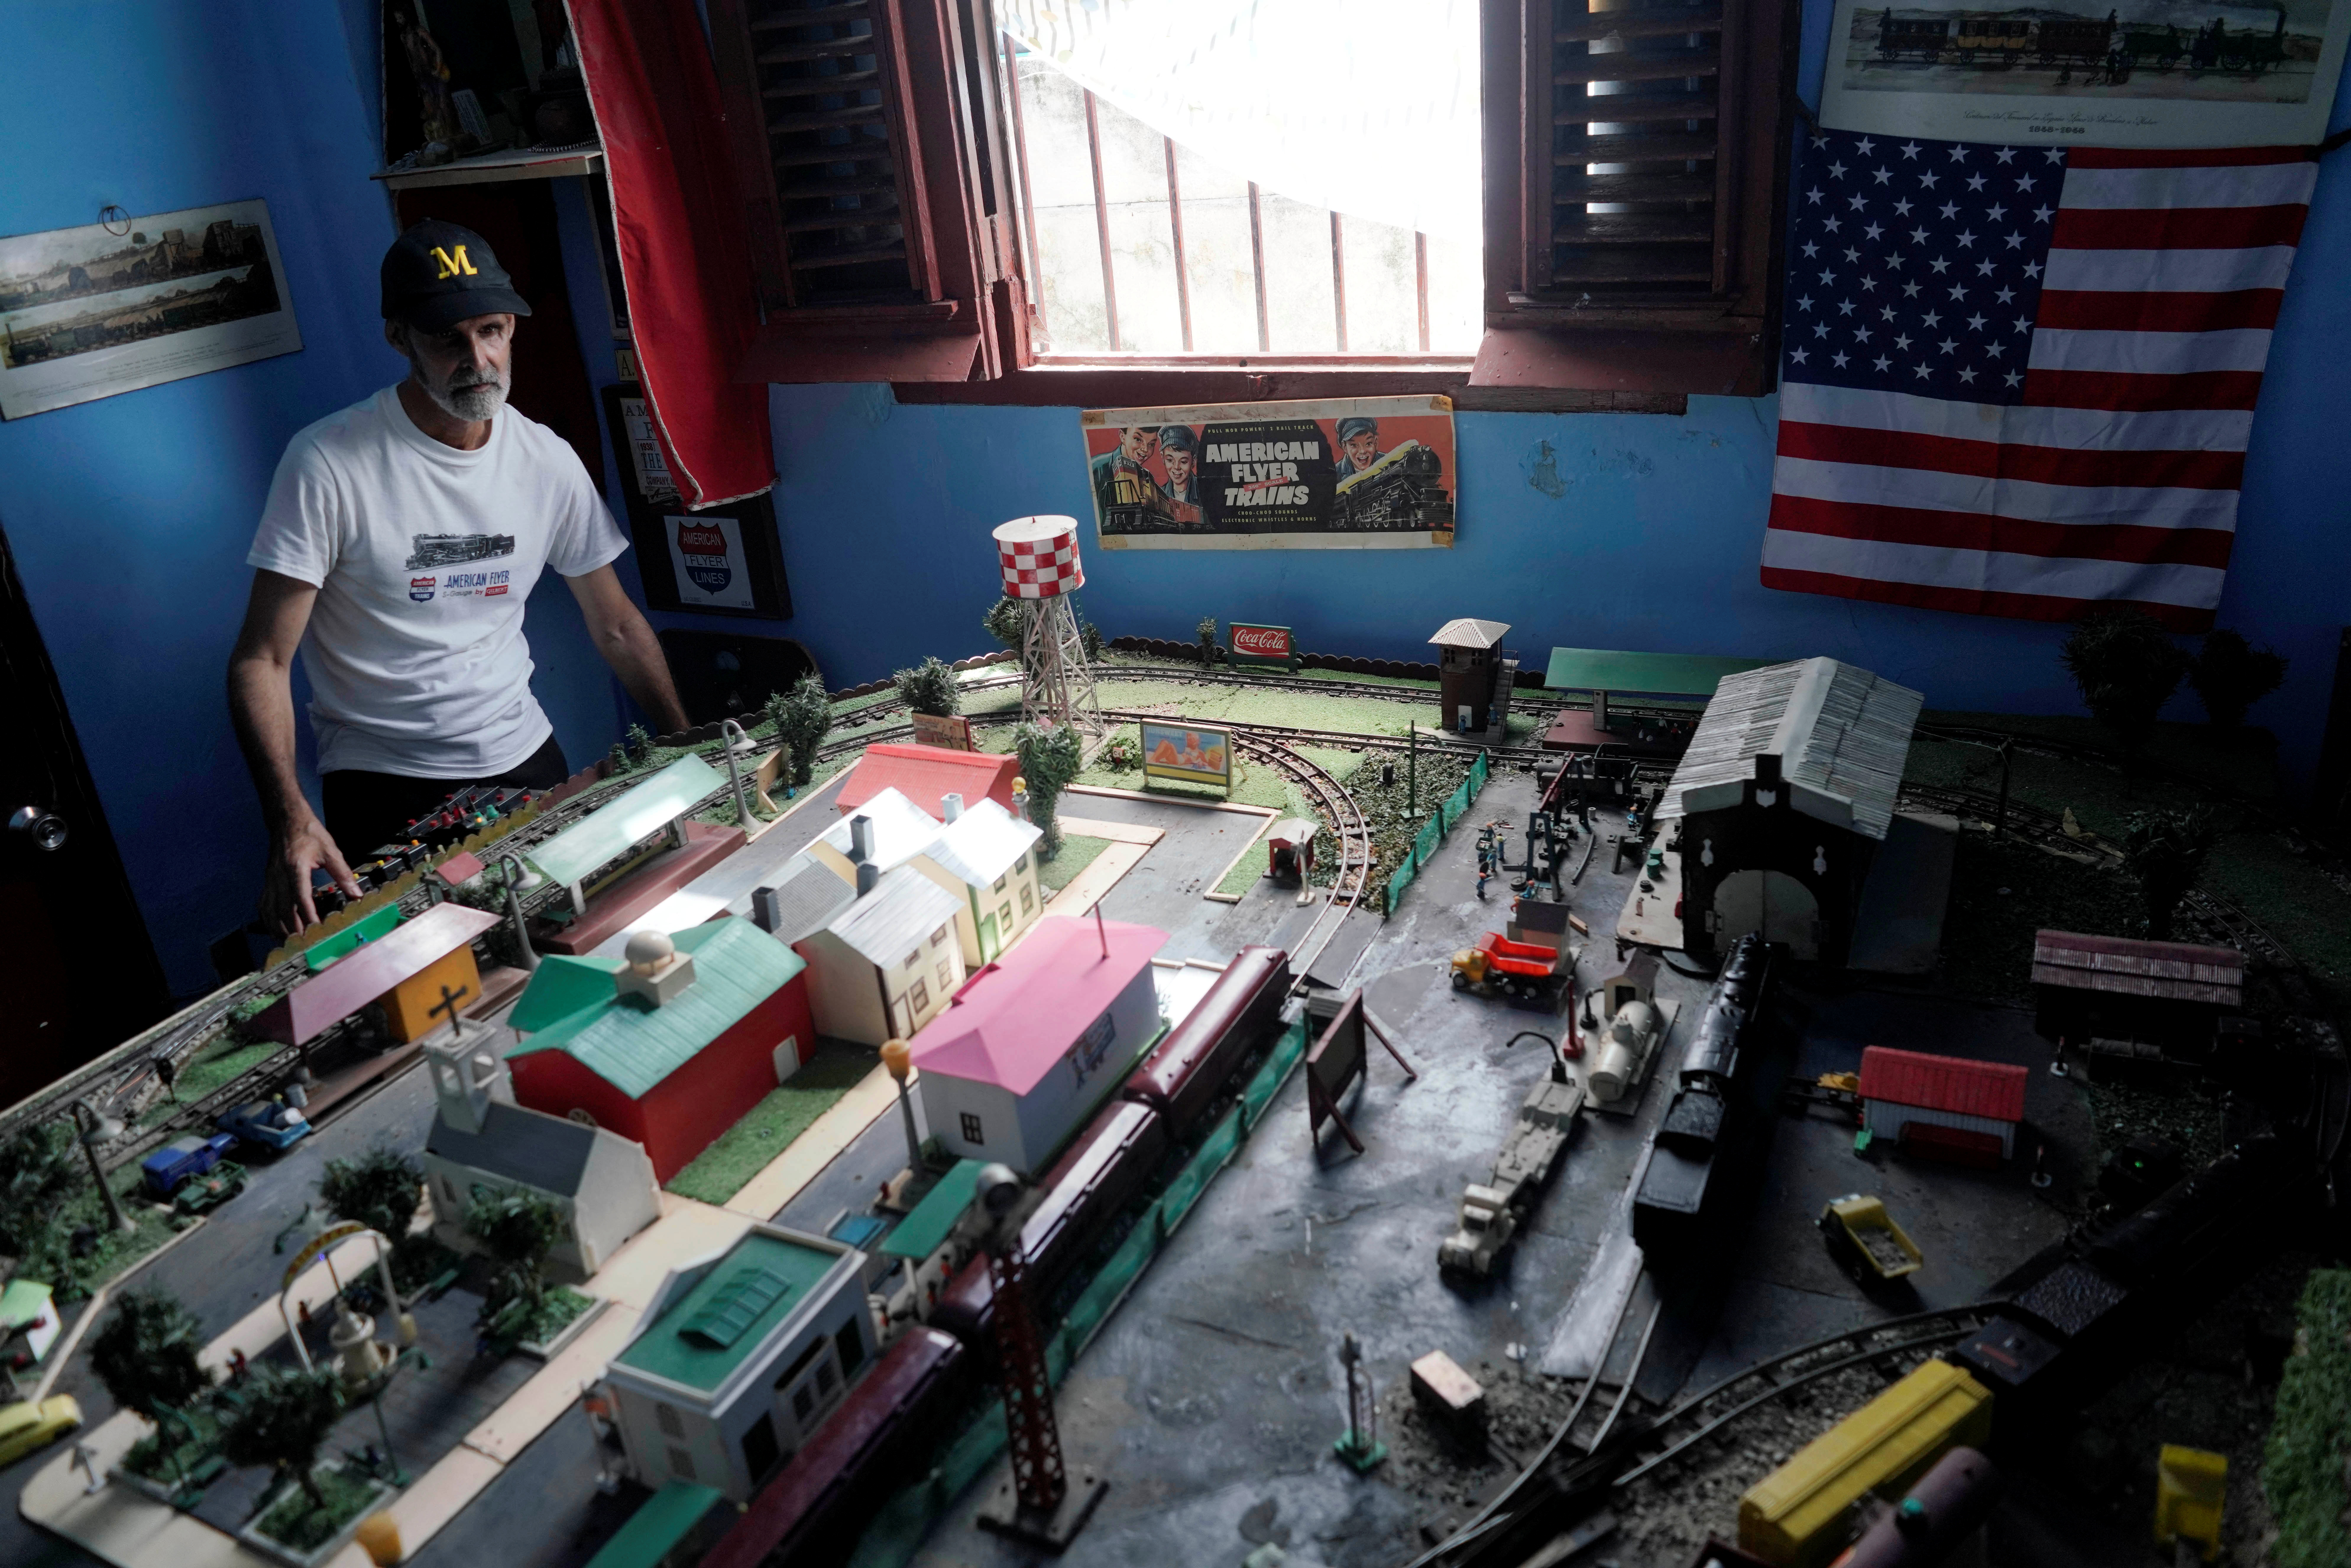 Miguel Jorda, 56, shows his model trains at his home in Havana, Cuba, May 7, 2021. Picture taken on May 7, 2021. REUTERS/Alexandre Meneghini